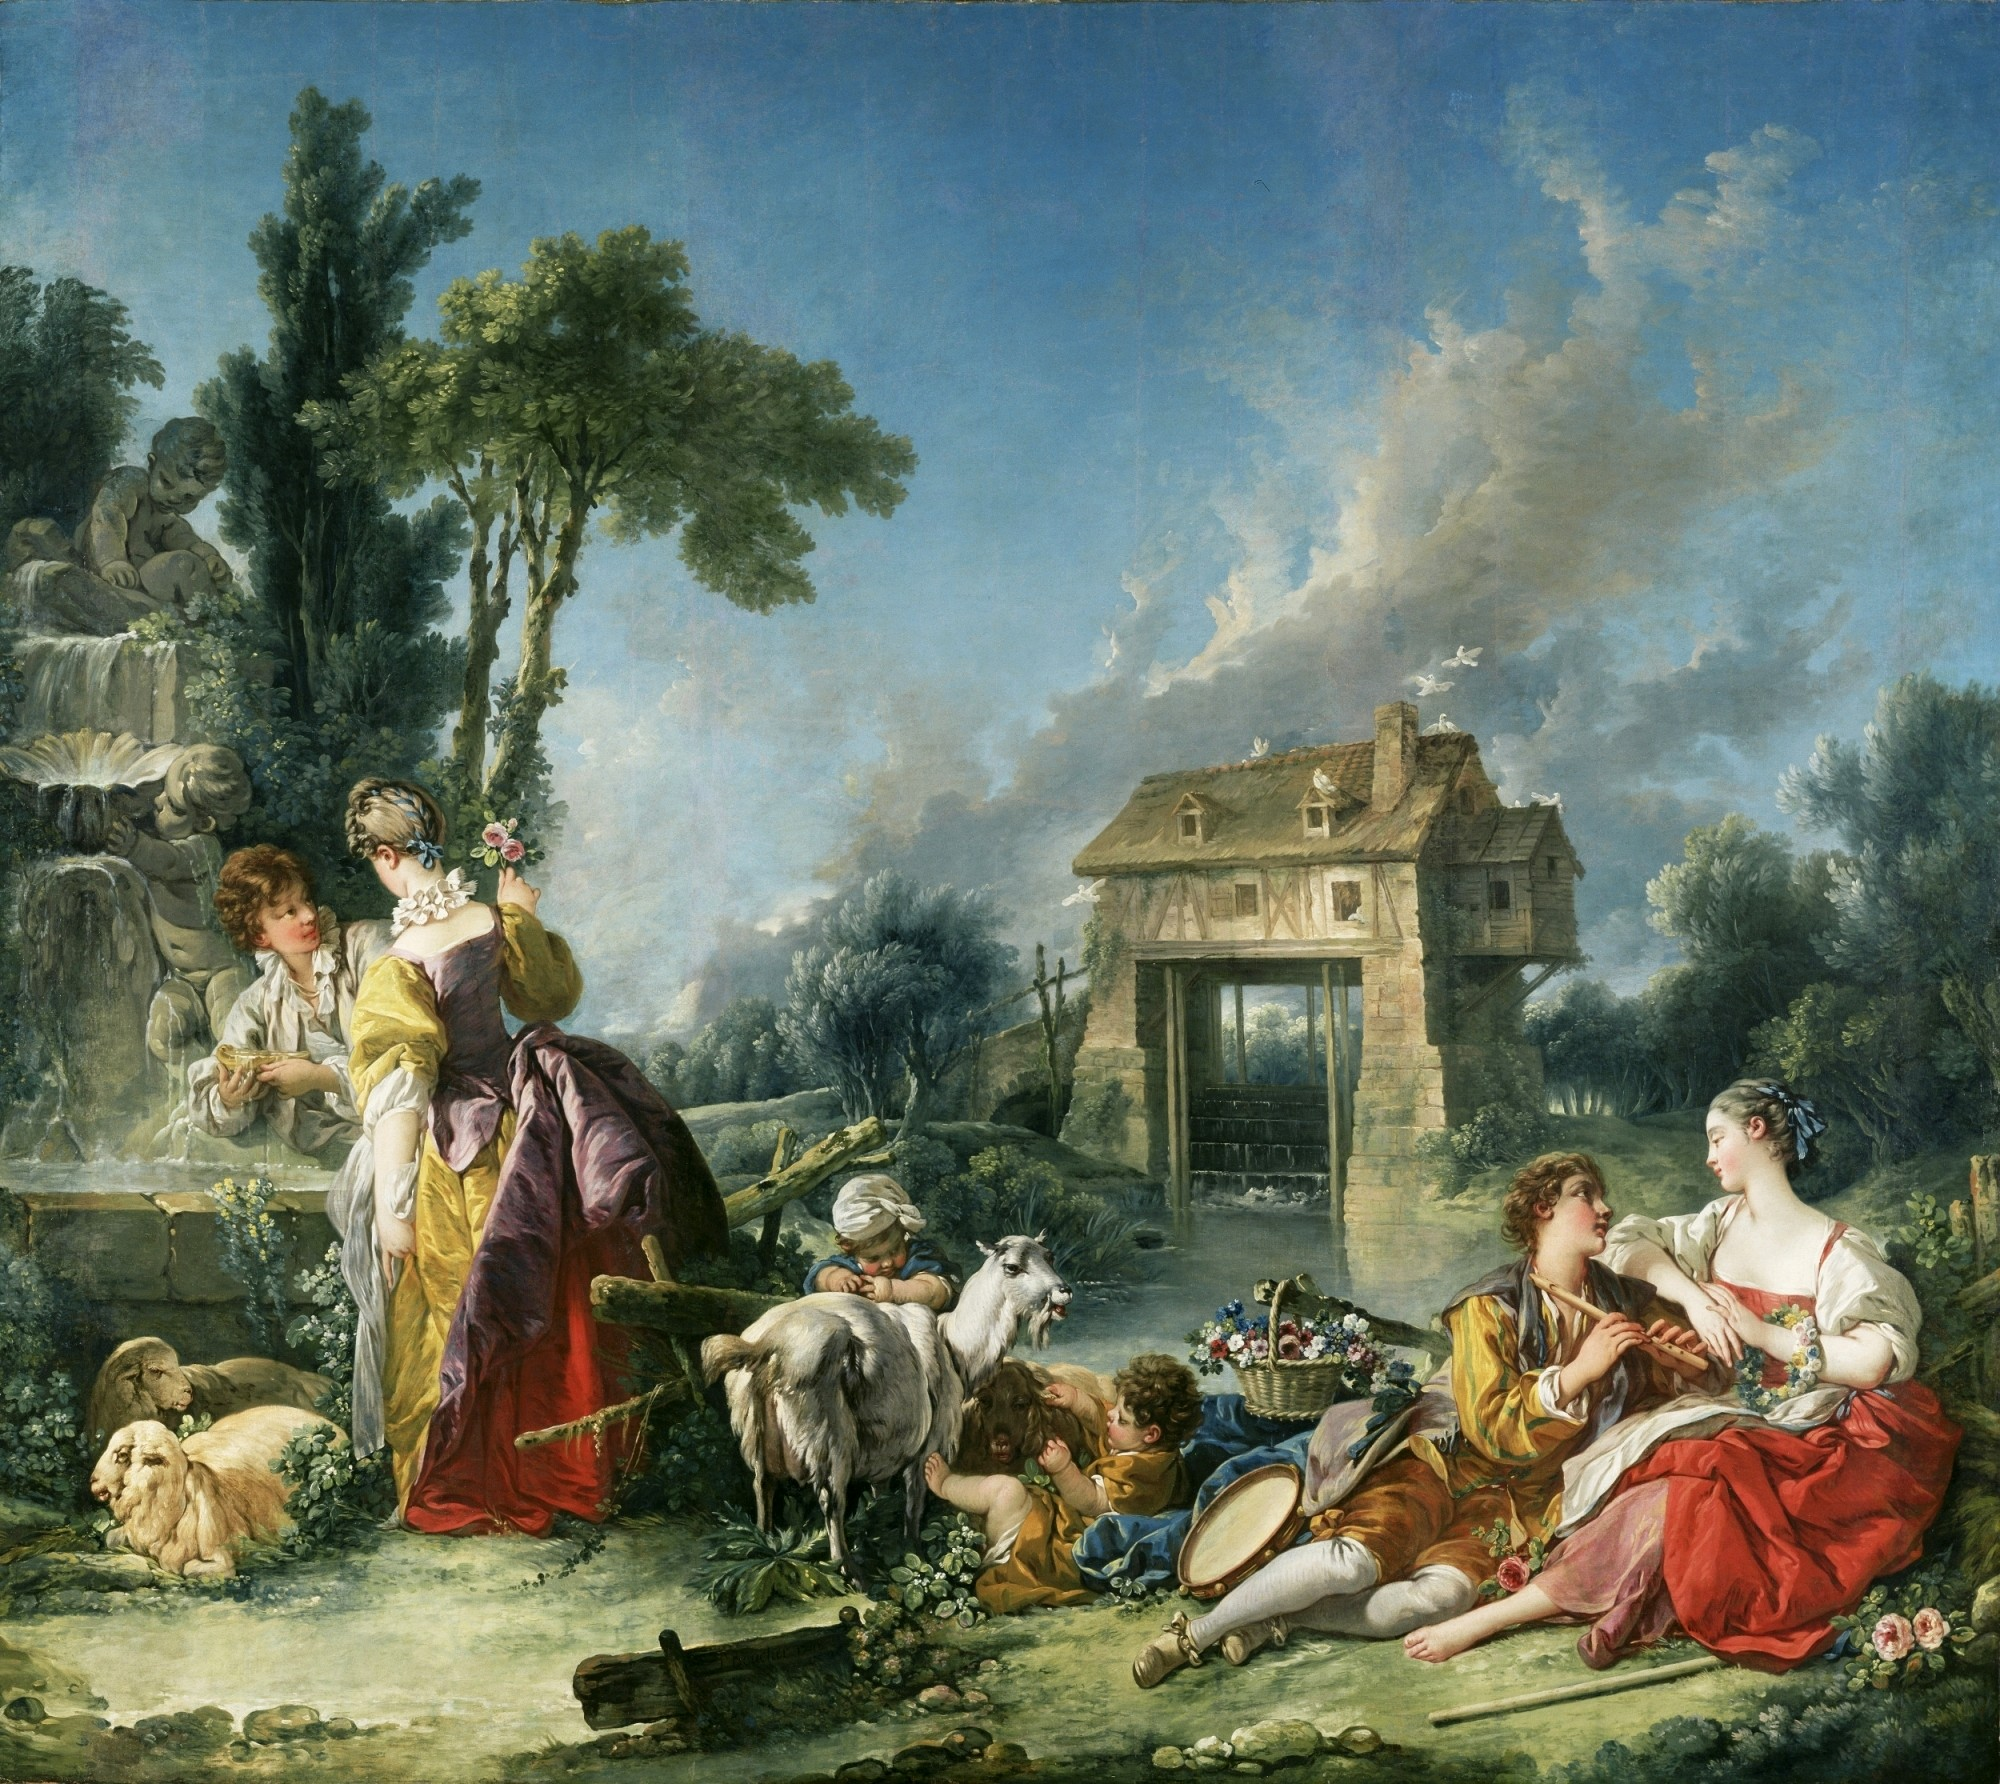 Les Nobles Pastorales - The Fountain of Love, 1748 Francois Boucher